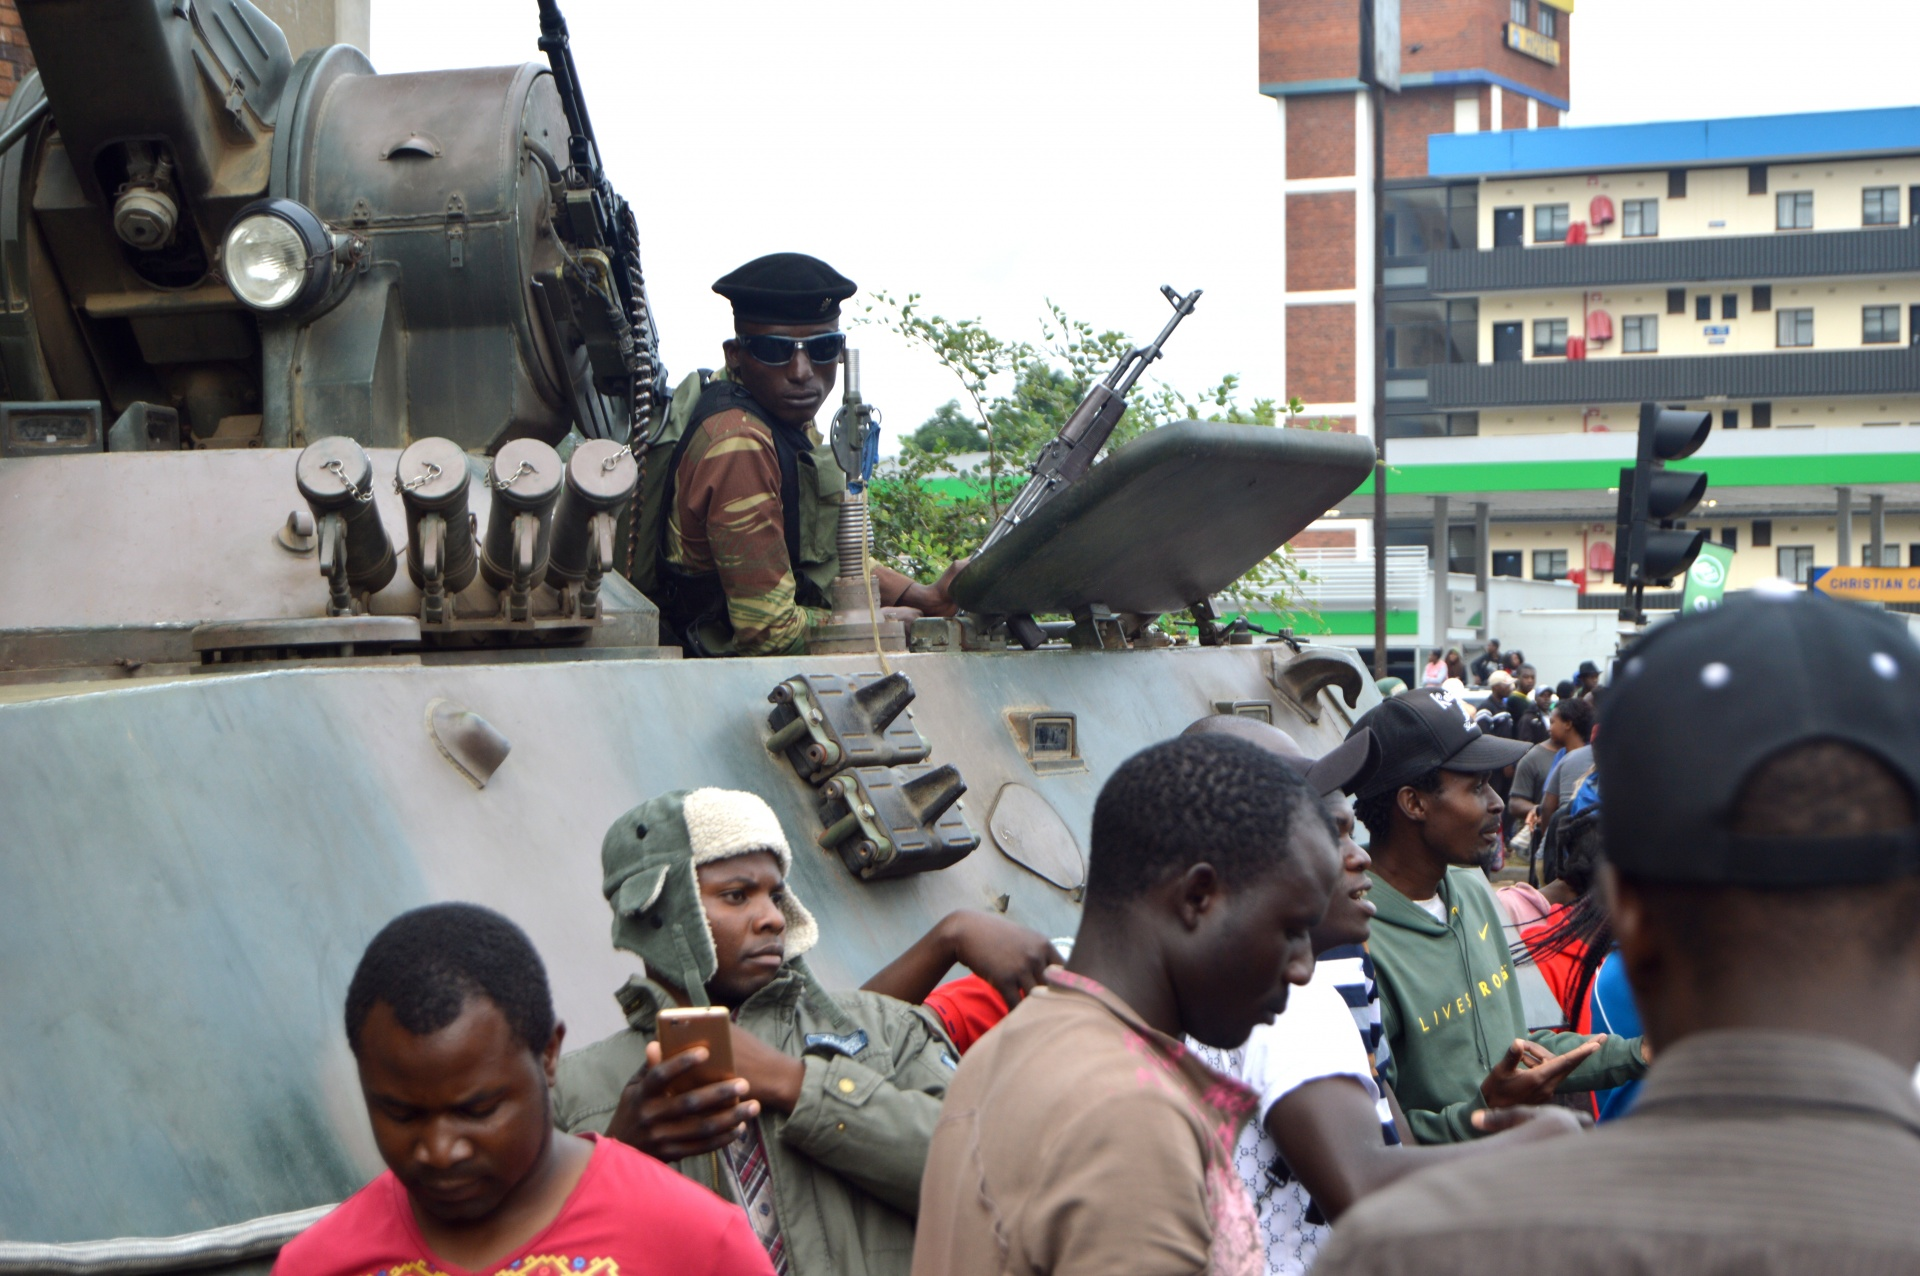 A tank in harare during the coup